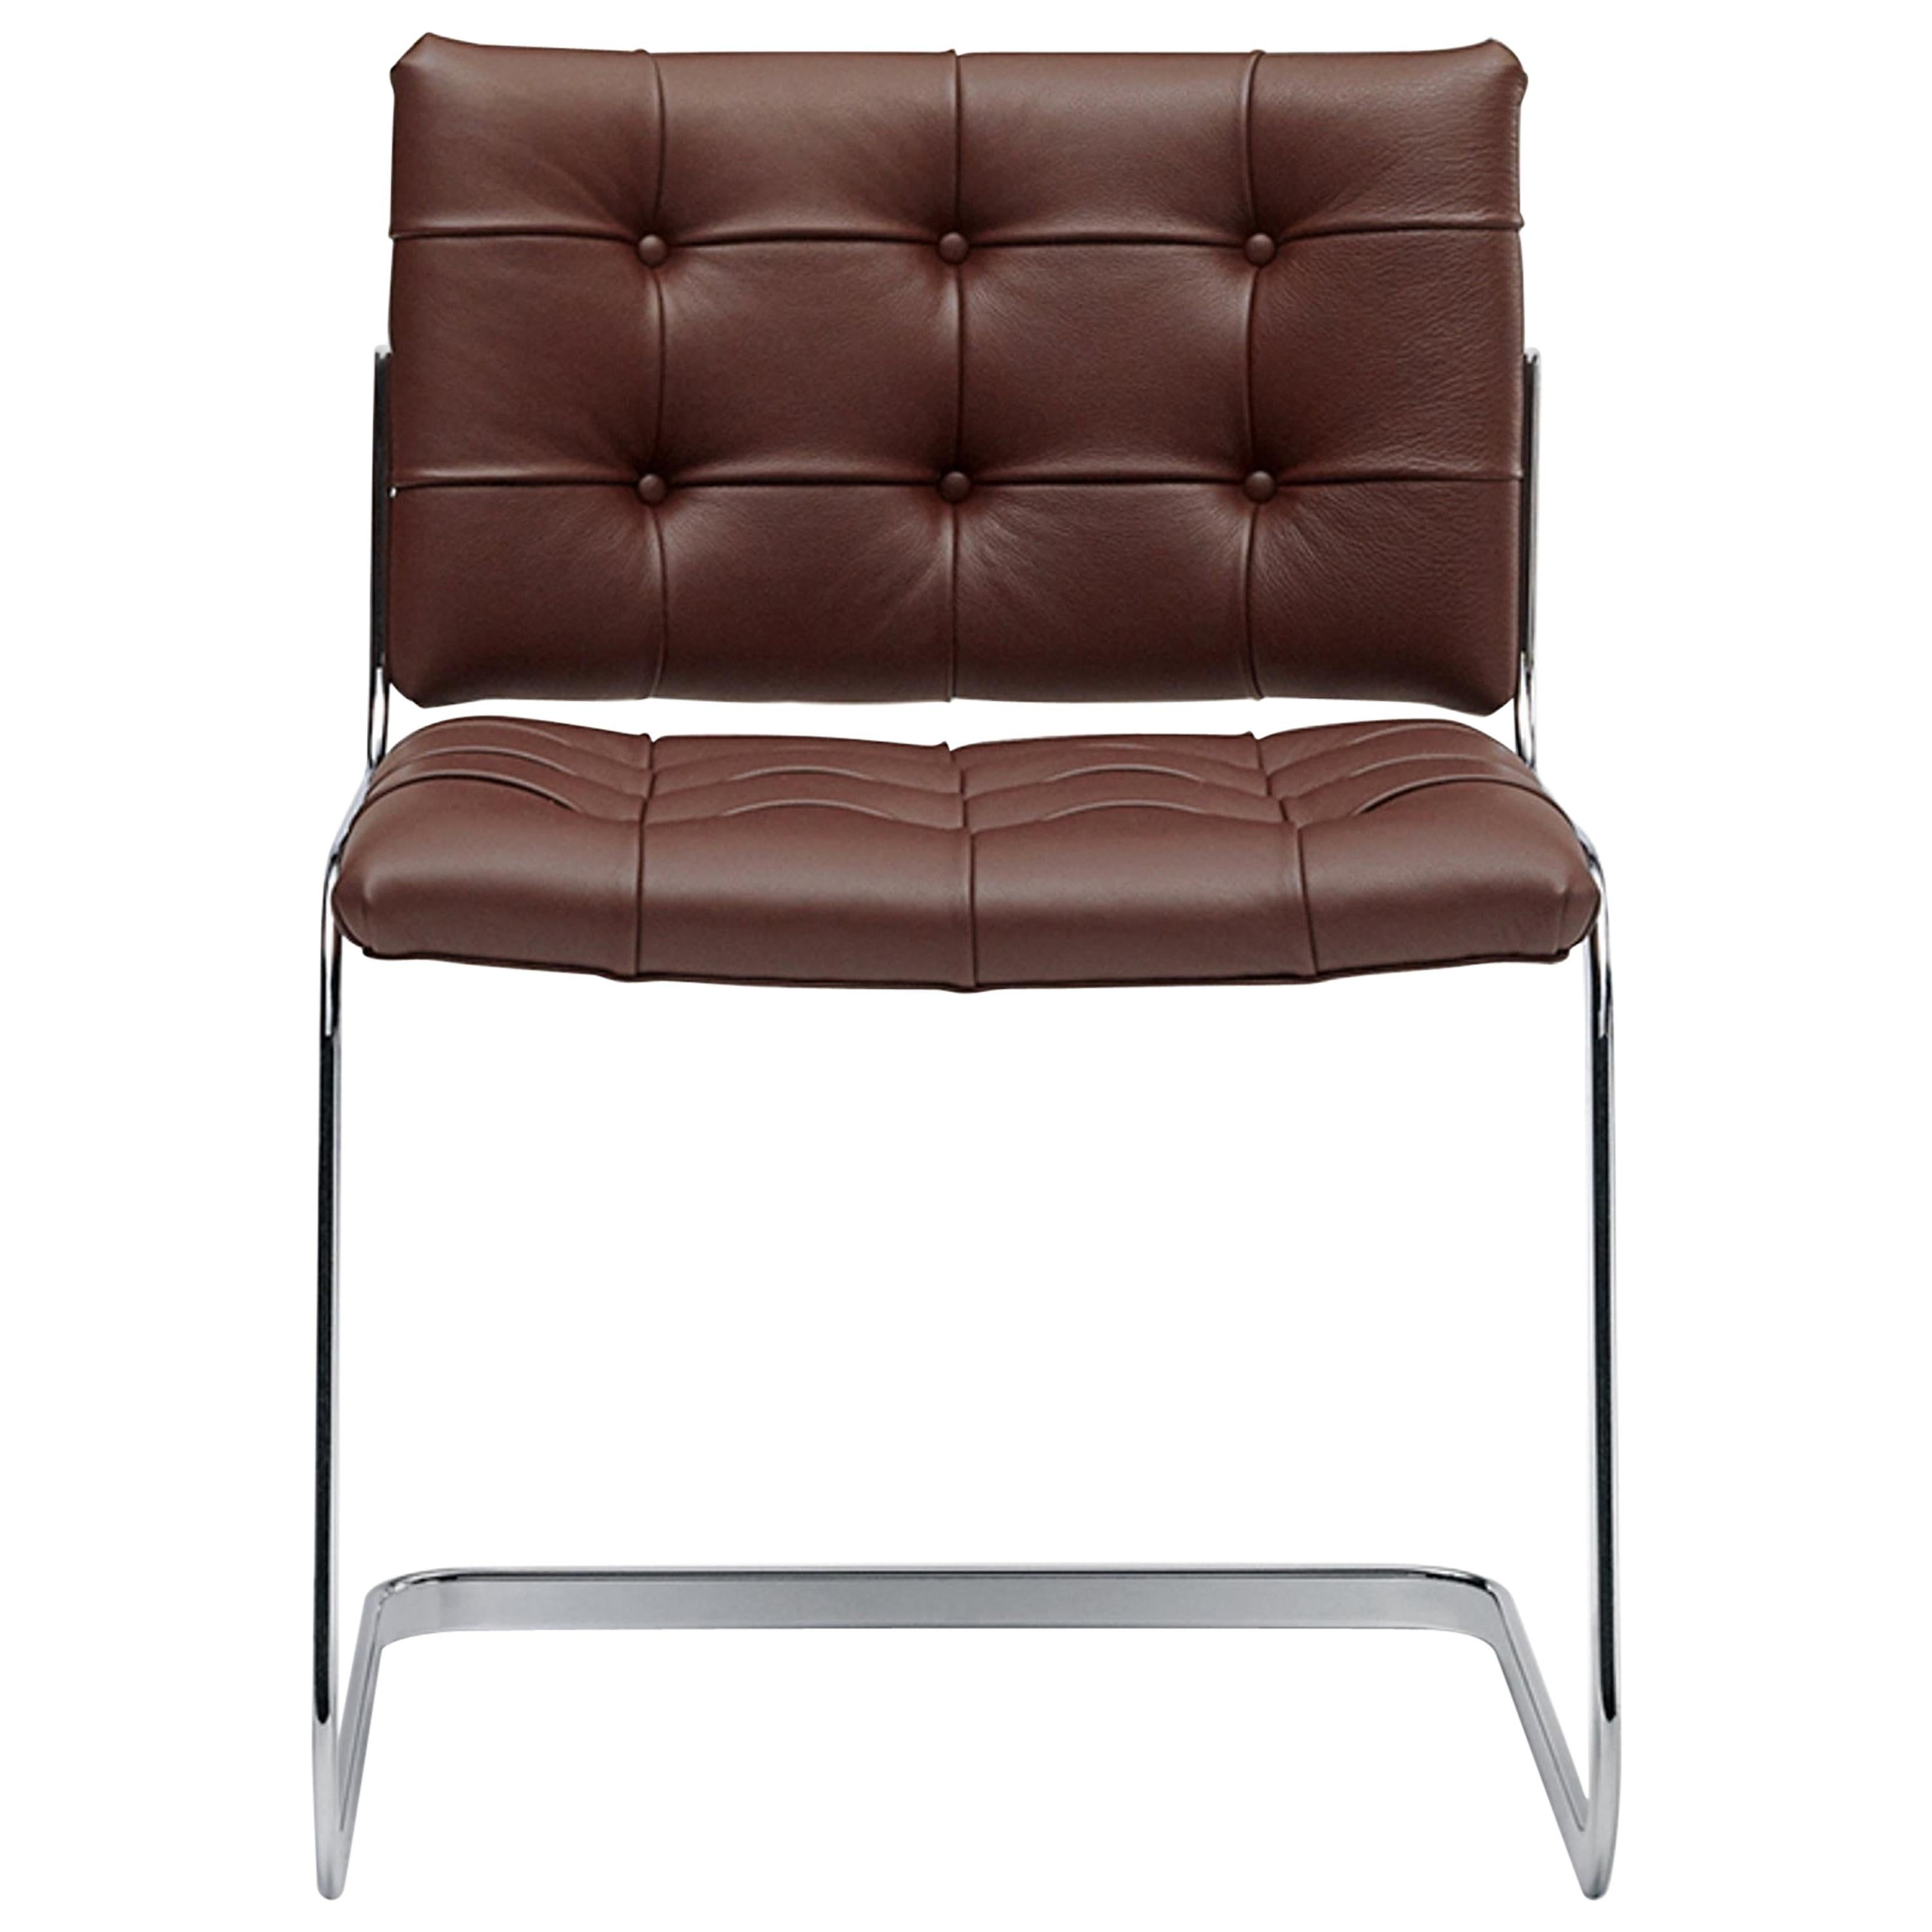 Rh 305 Bauhaus Dining Tufted Chair Leather And Stainless Steel Legs By De Sede